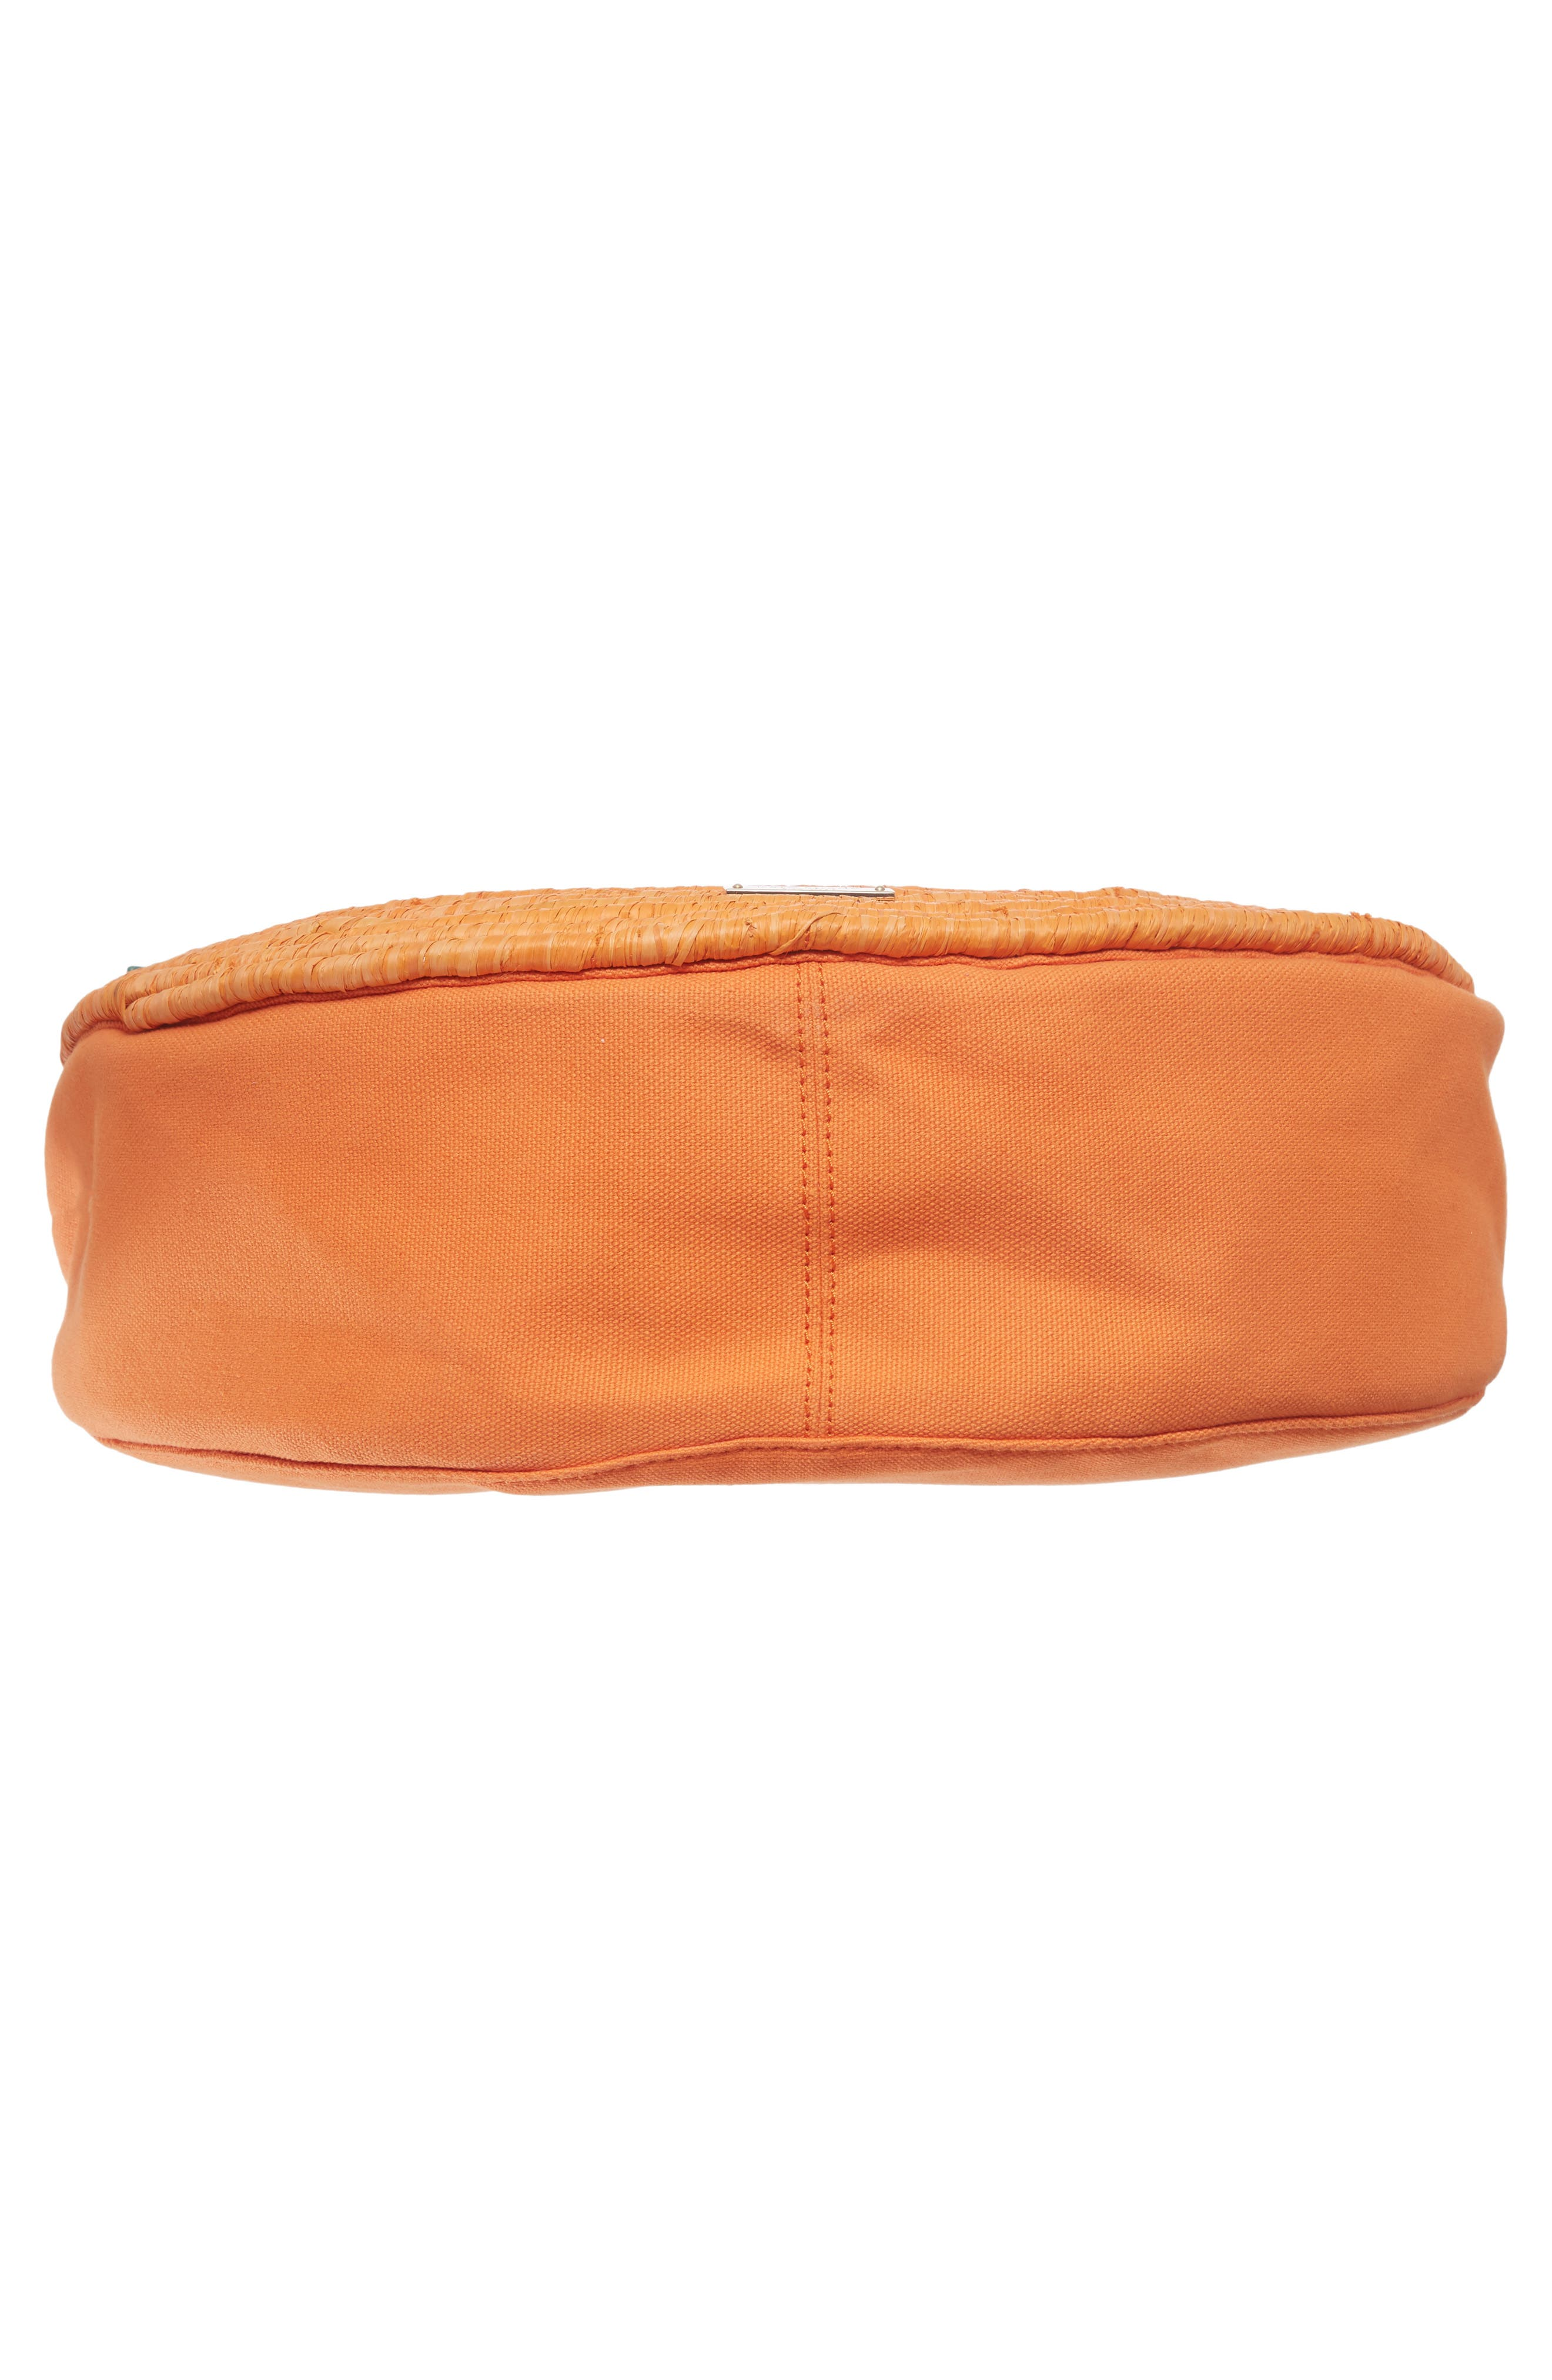 spice things up orange tote,                             Alternate thumbnail 6, color,                             800